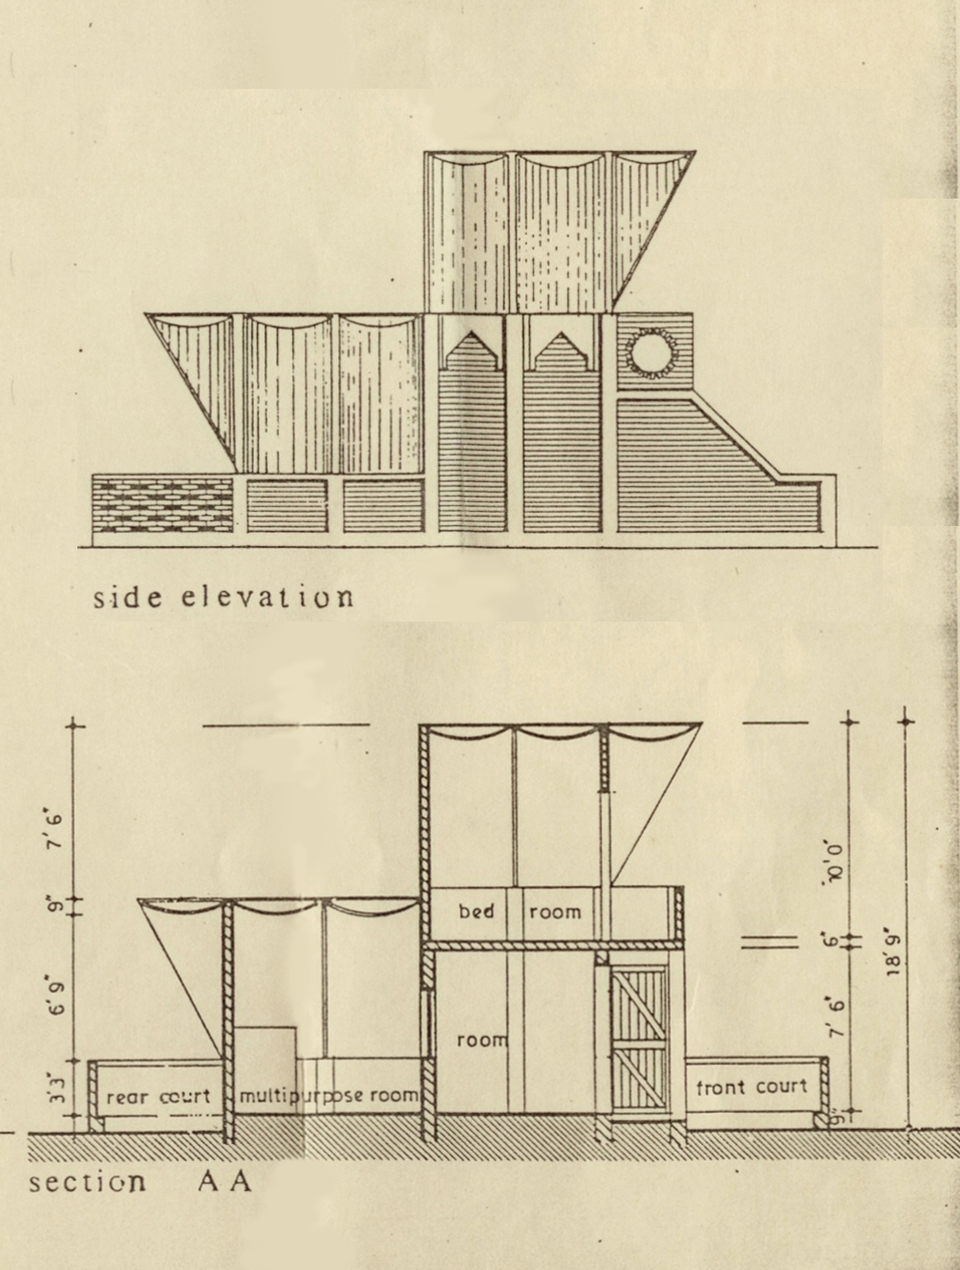 Side elevation and Section A-A